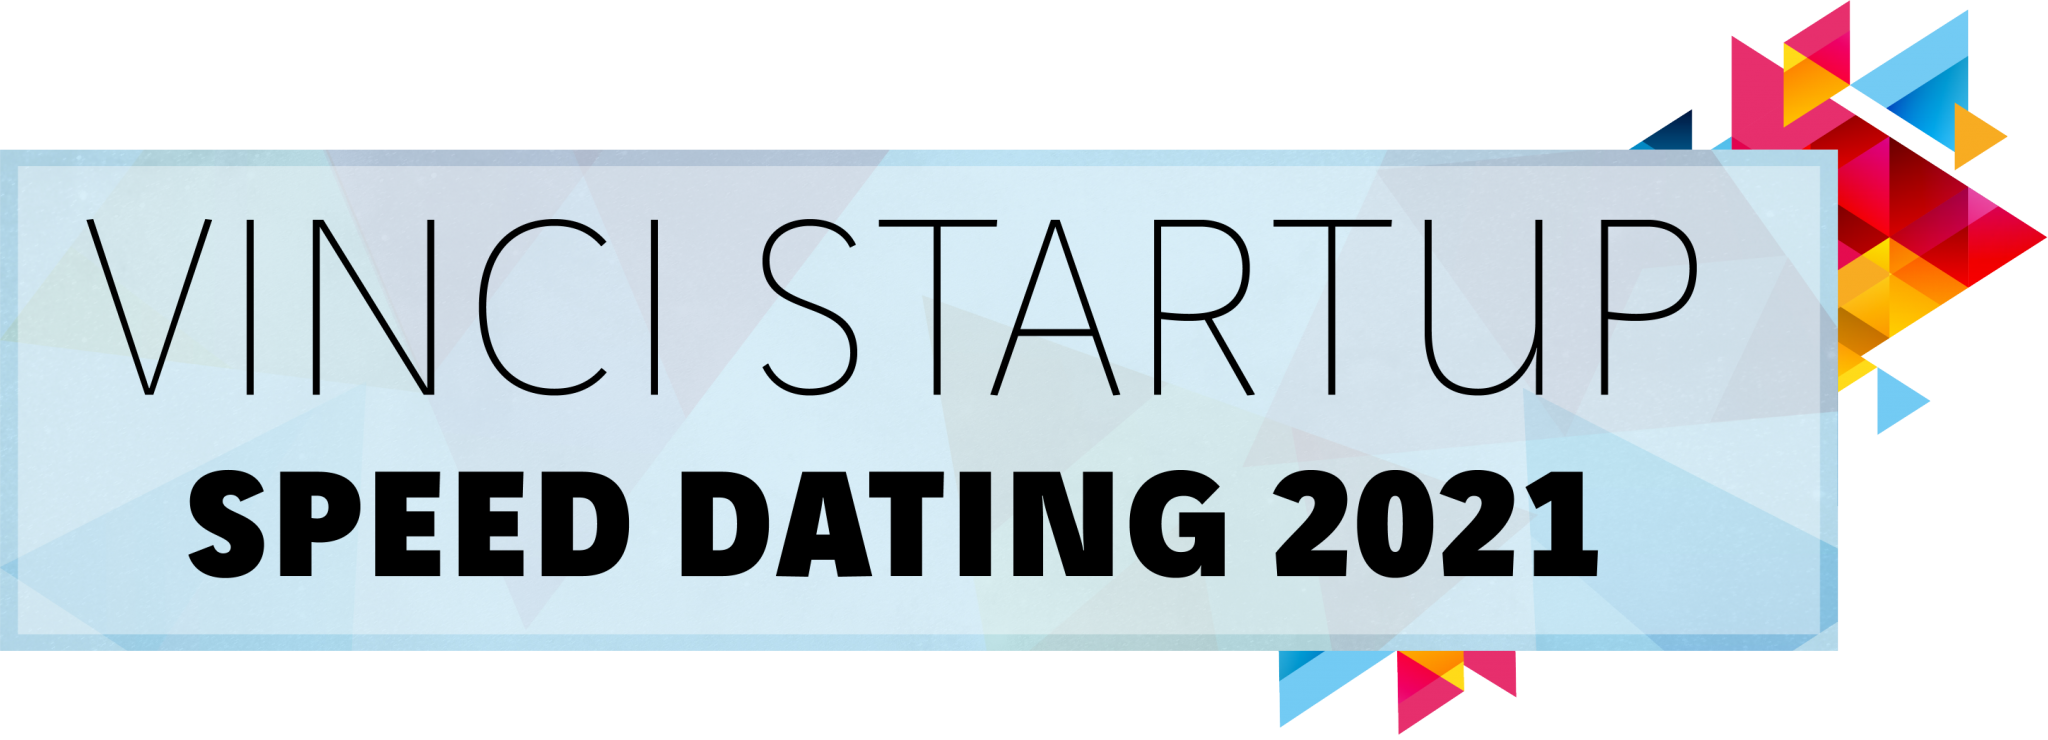 "VINCI Startup Speed Dating 2021""."